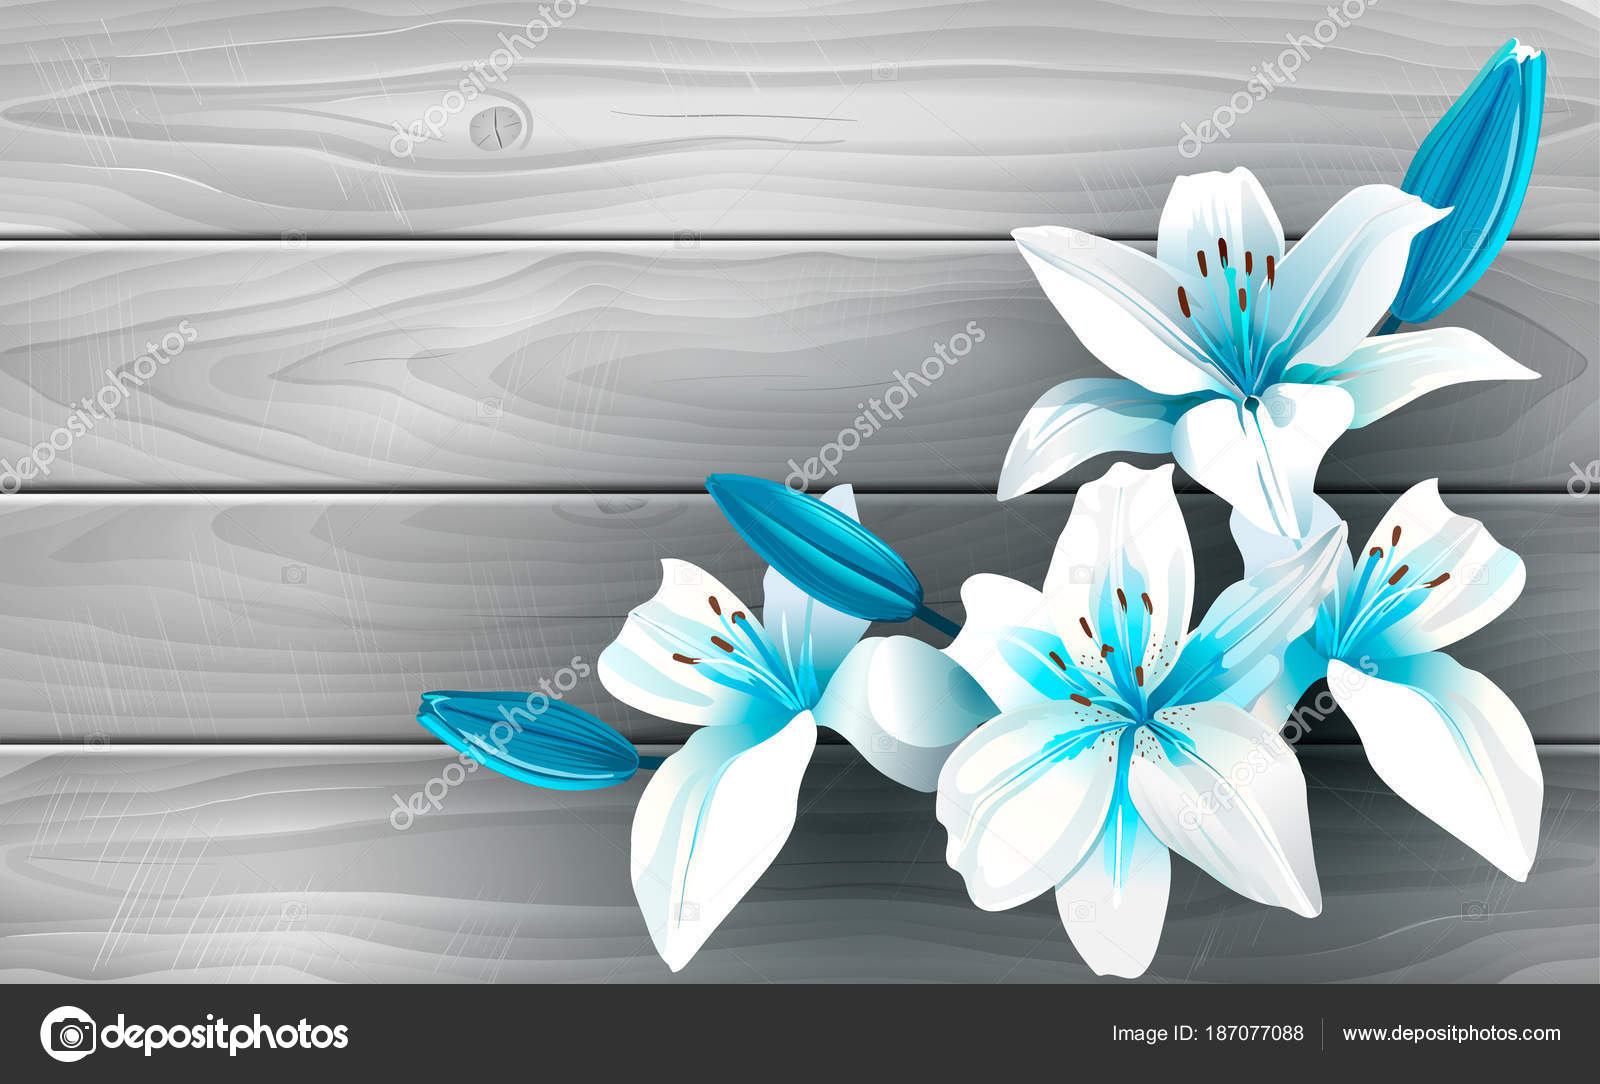 Blue And White Flowers On Wood Illustration Of Blue And White